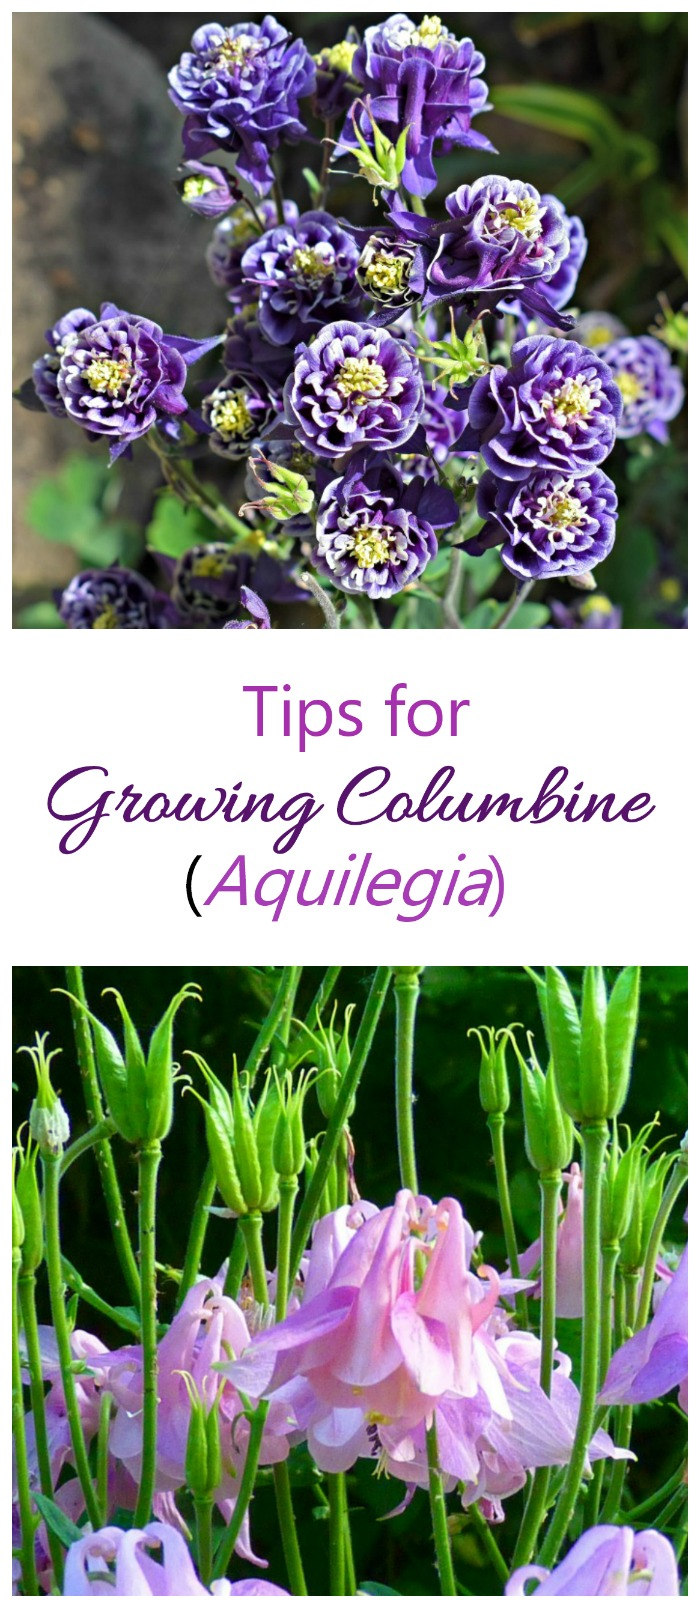 tips for growing columbine - Aquilegia. Bell shaped flowers that are very showy #columbine